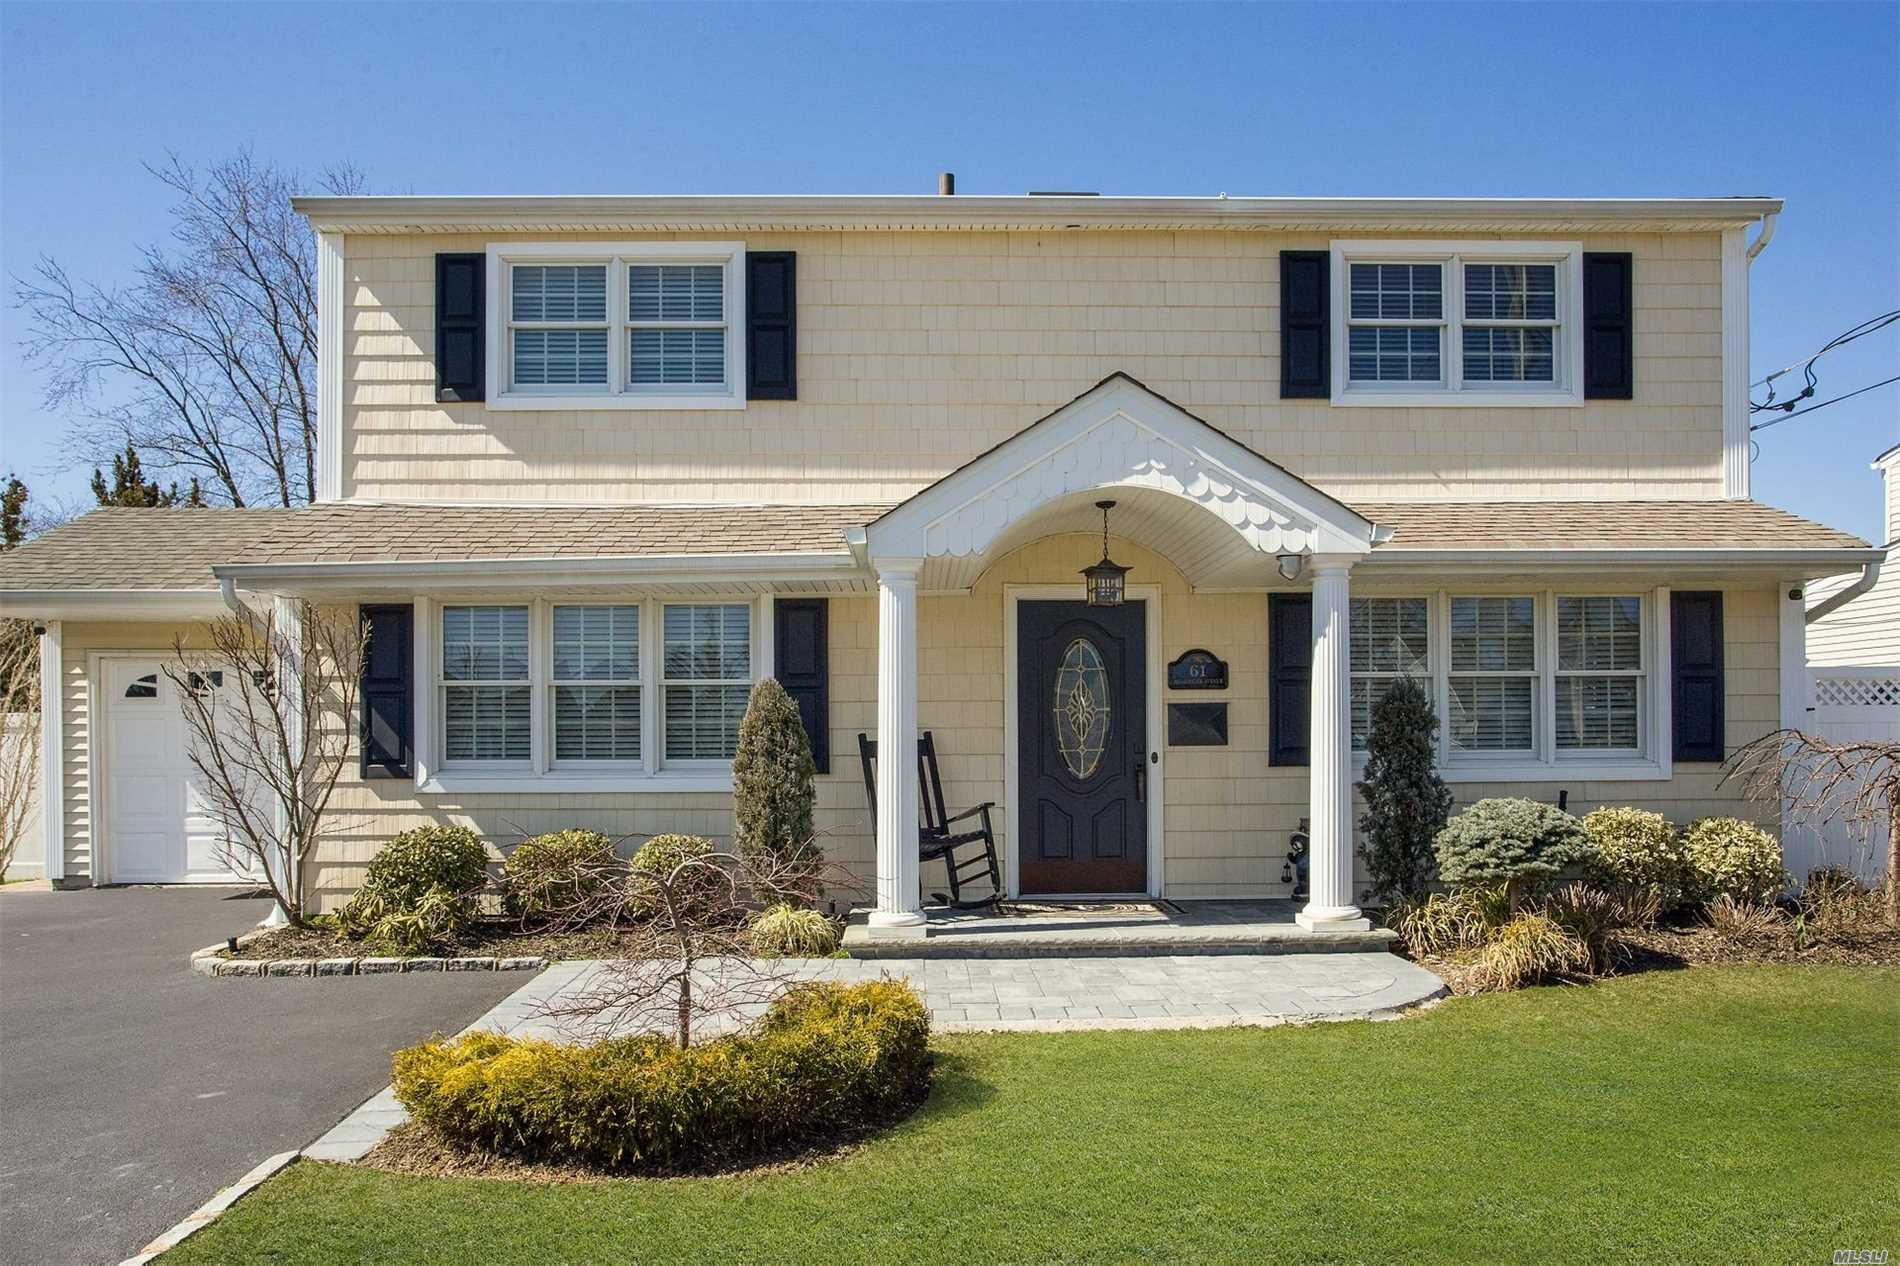 Prepare to be Awed! This Chic 3 BR, 2 Bath Colonial is Simple, Spacious, Sparkling & Great for Entertaining!!! Updated within the past few years, it's more than just a Home...it's a lifestyle!! Enviable location for years to come!!